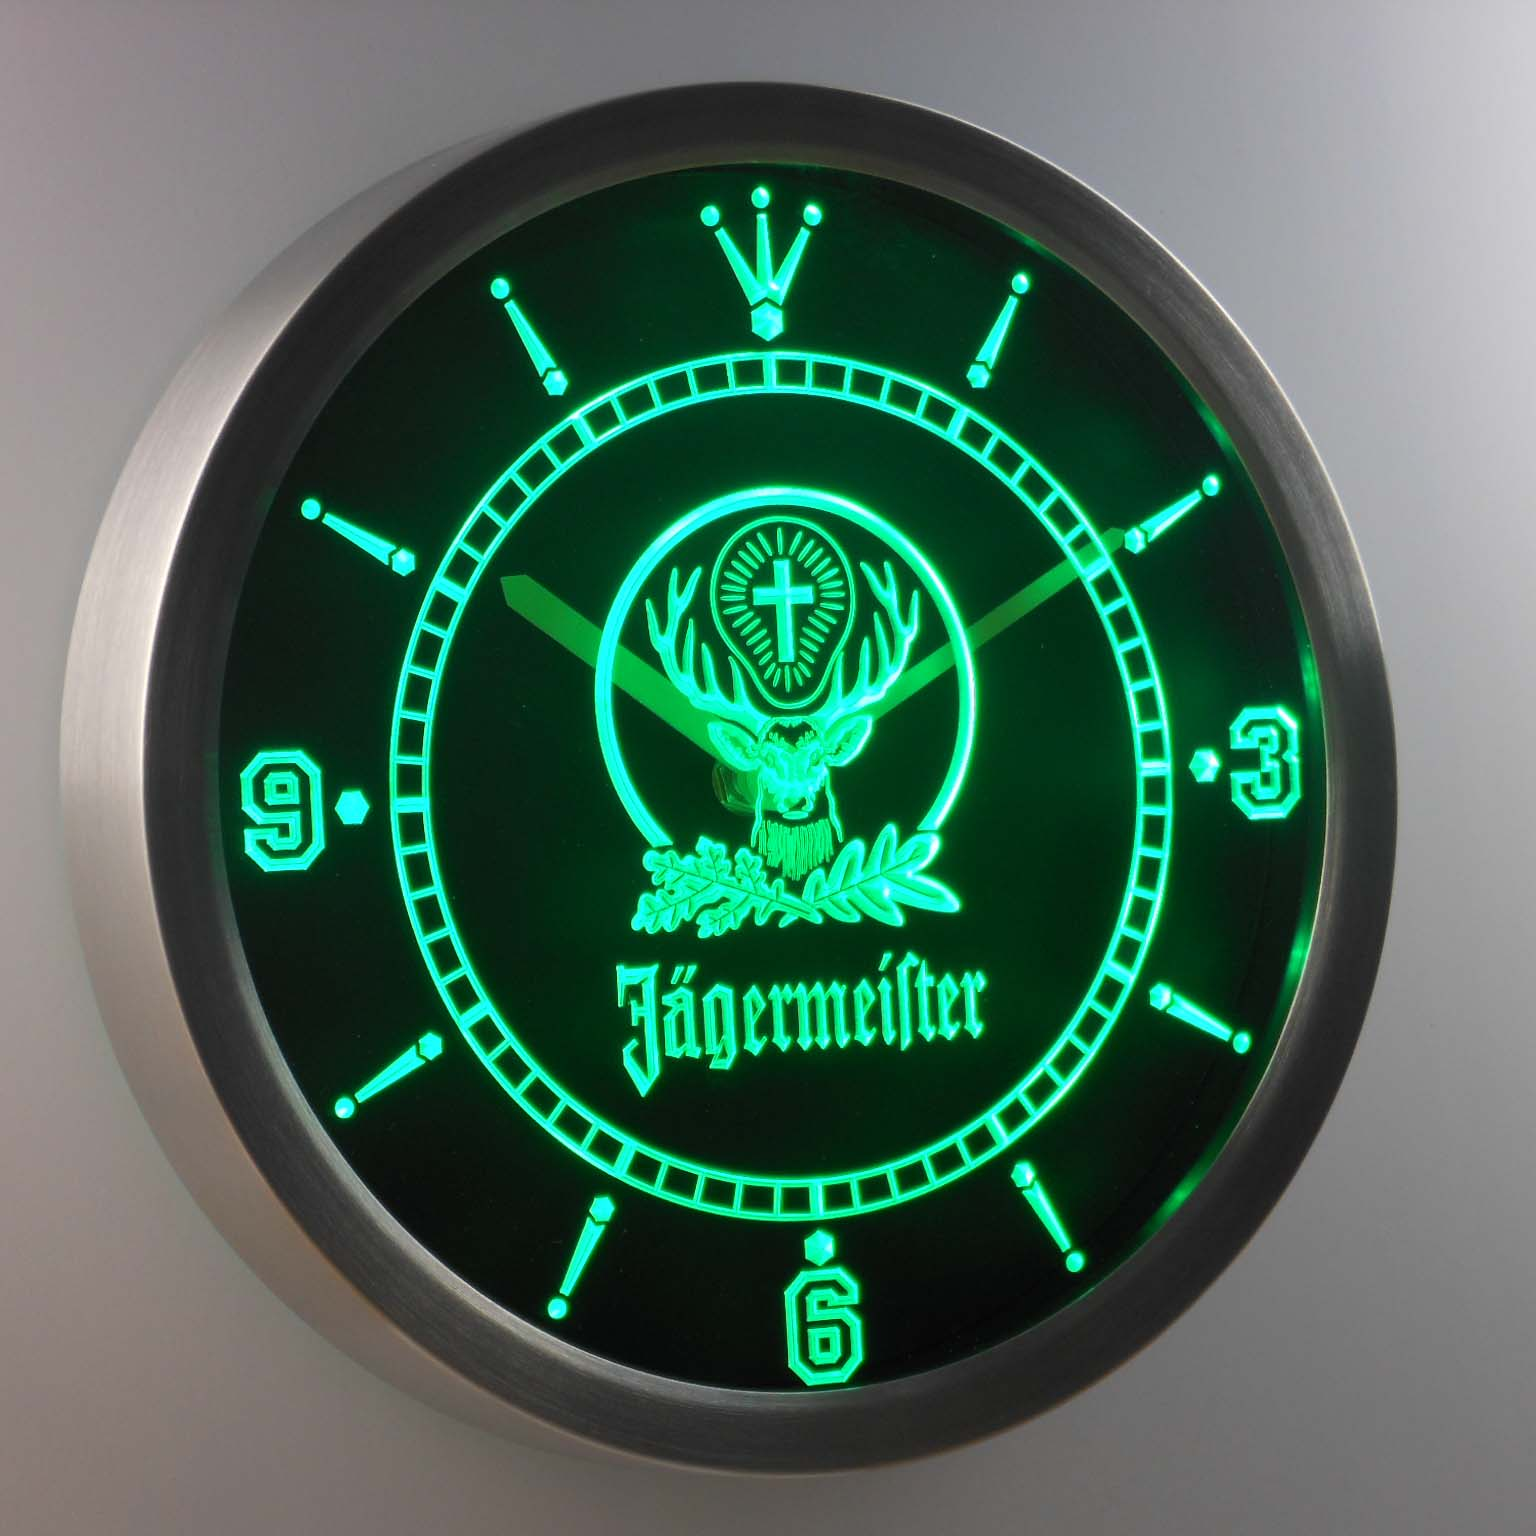 nc0572 jagermeister beer neon sign led wall clock in wall clocks from home garden on. Black Bedroom Furniture Sets. Home Design Ideas